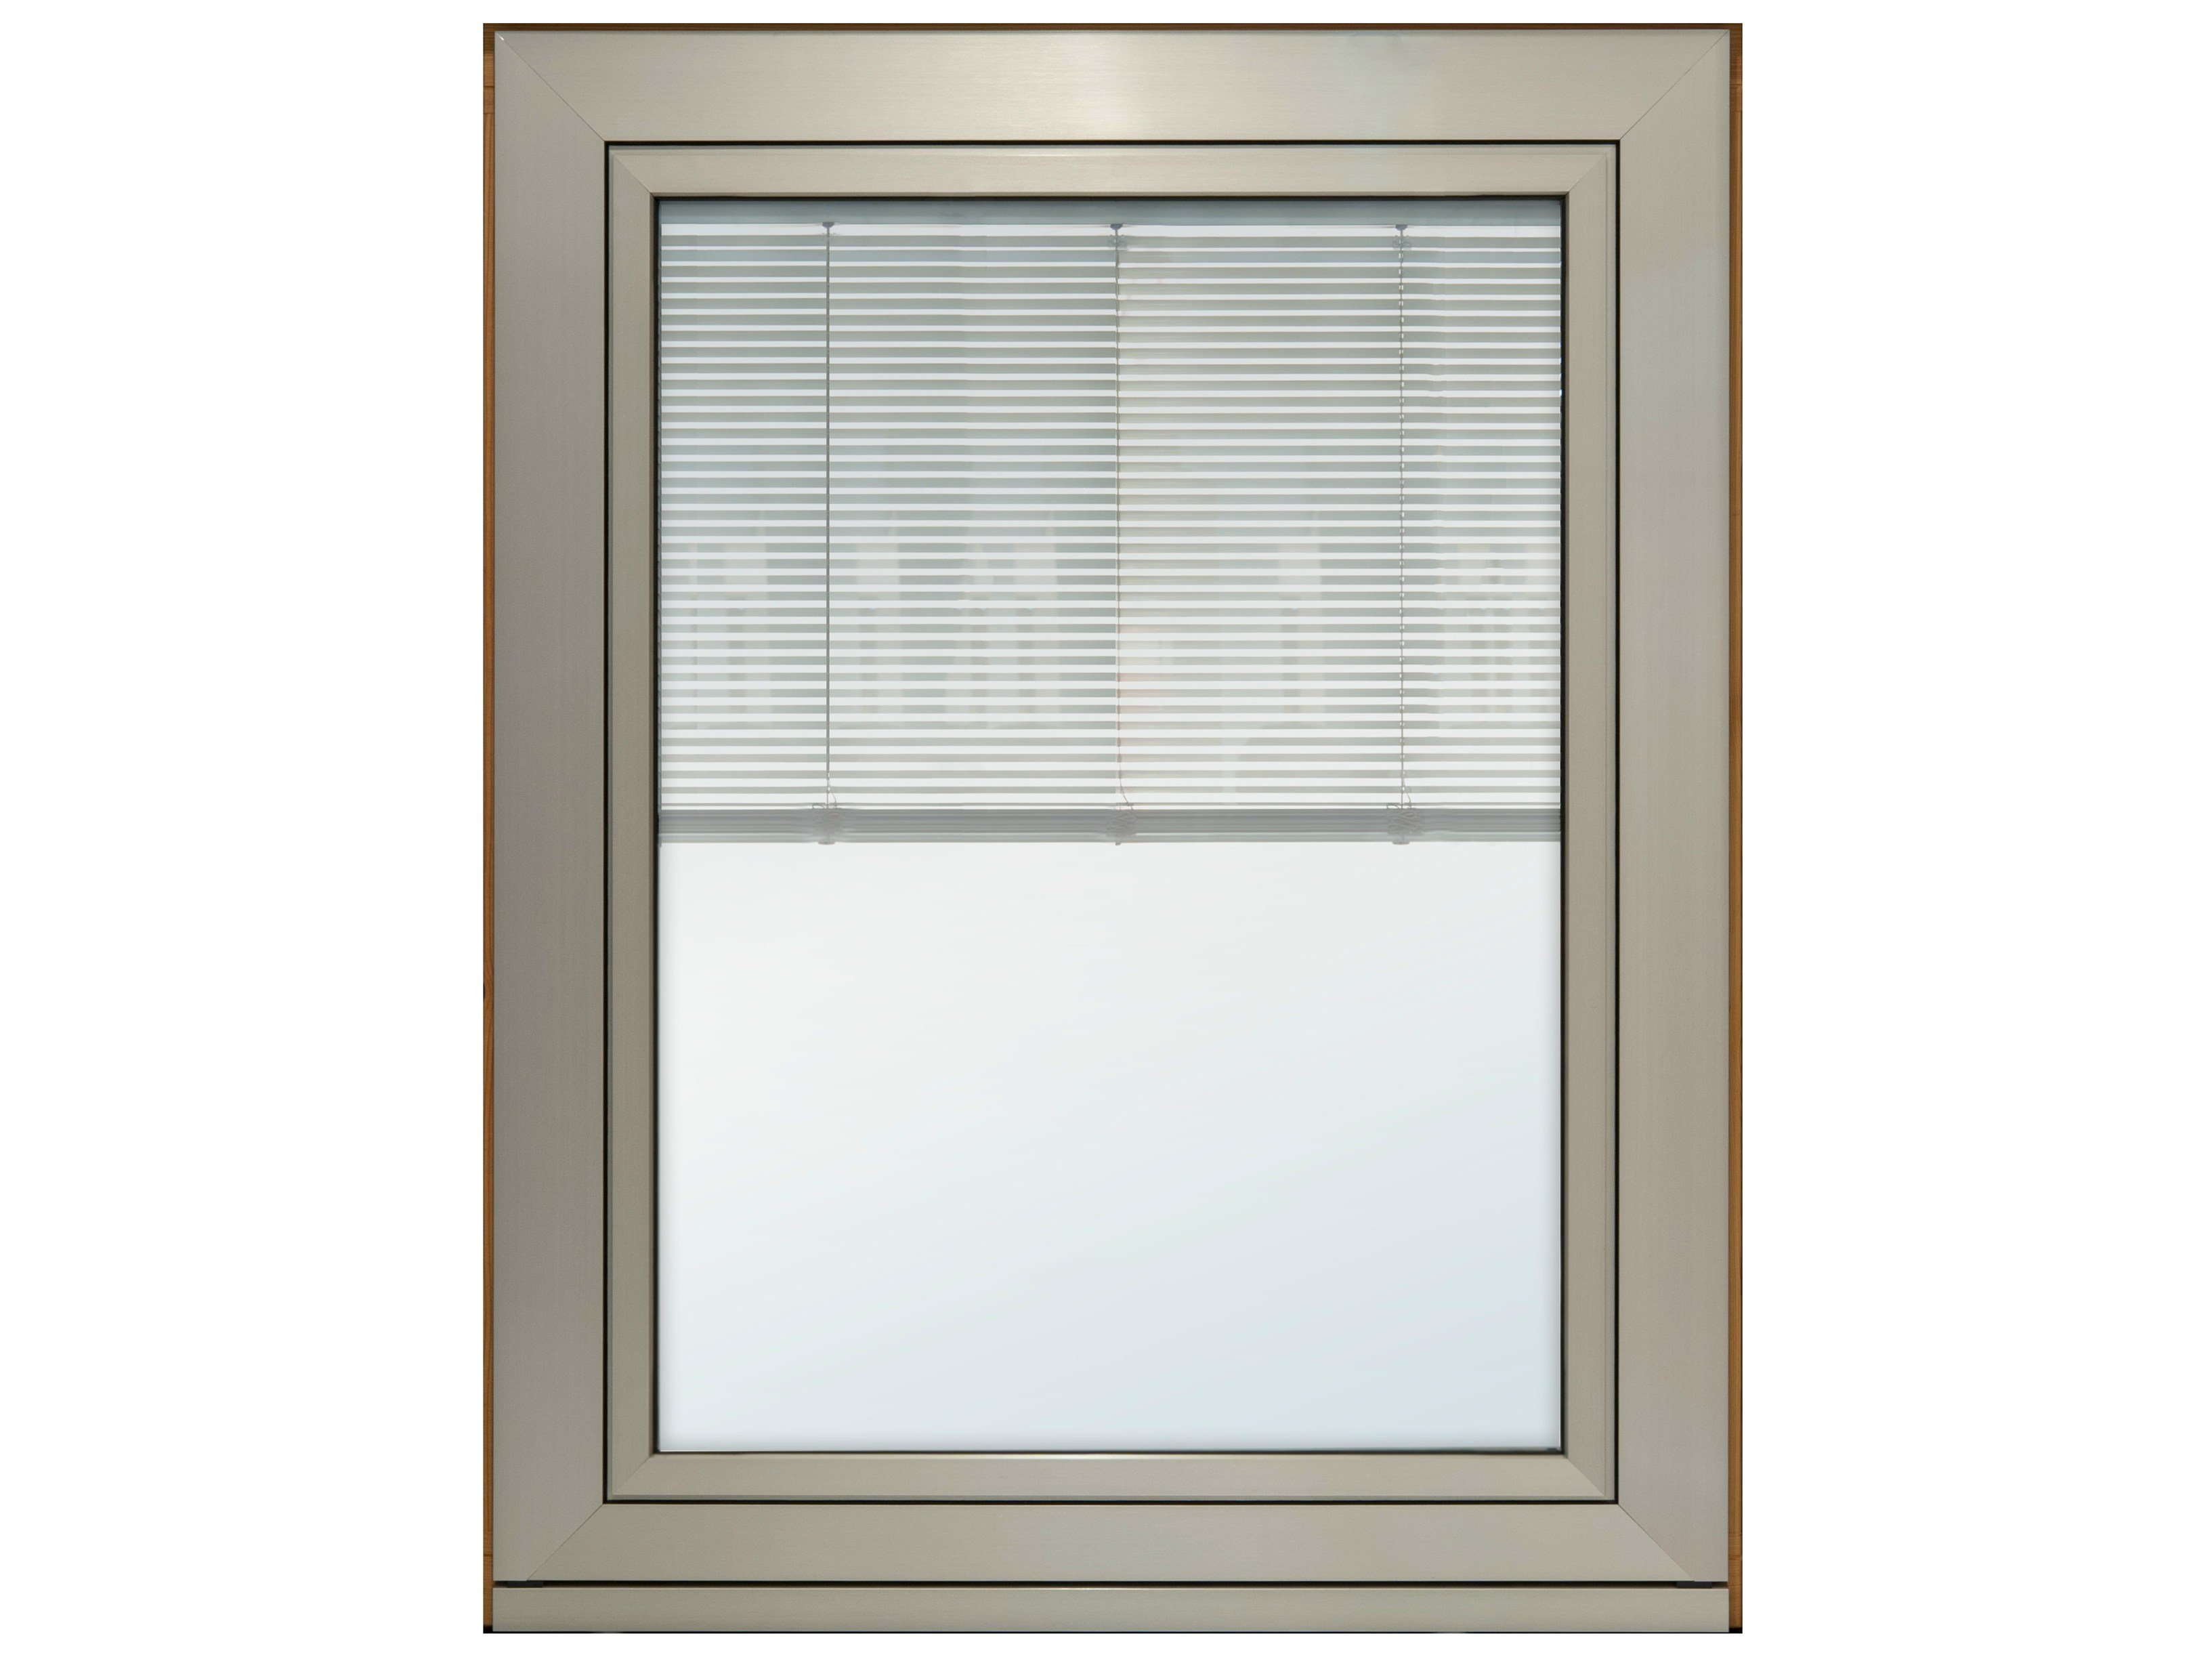 Eternity maxi window with built in blinds by pavanello for Windows with built in shades